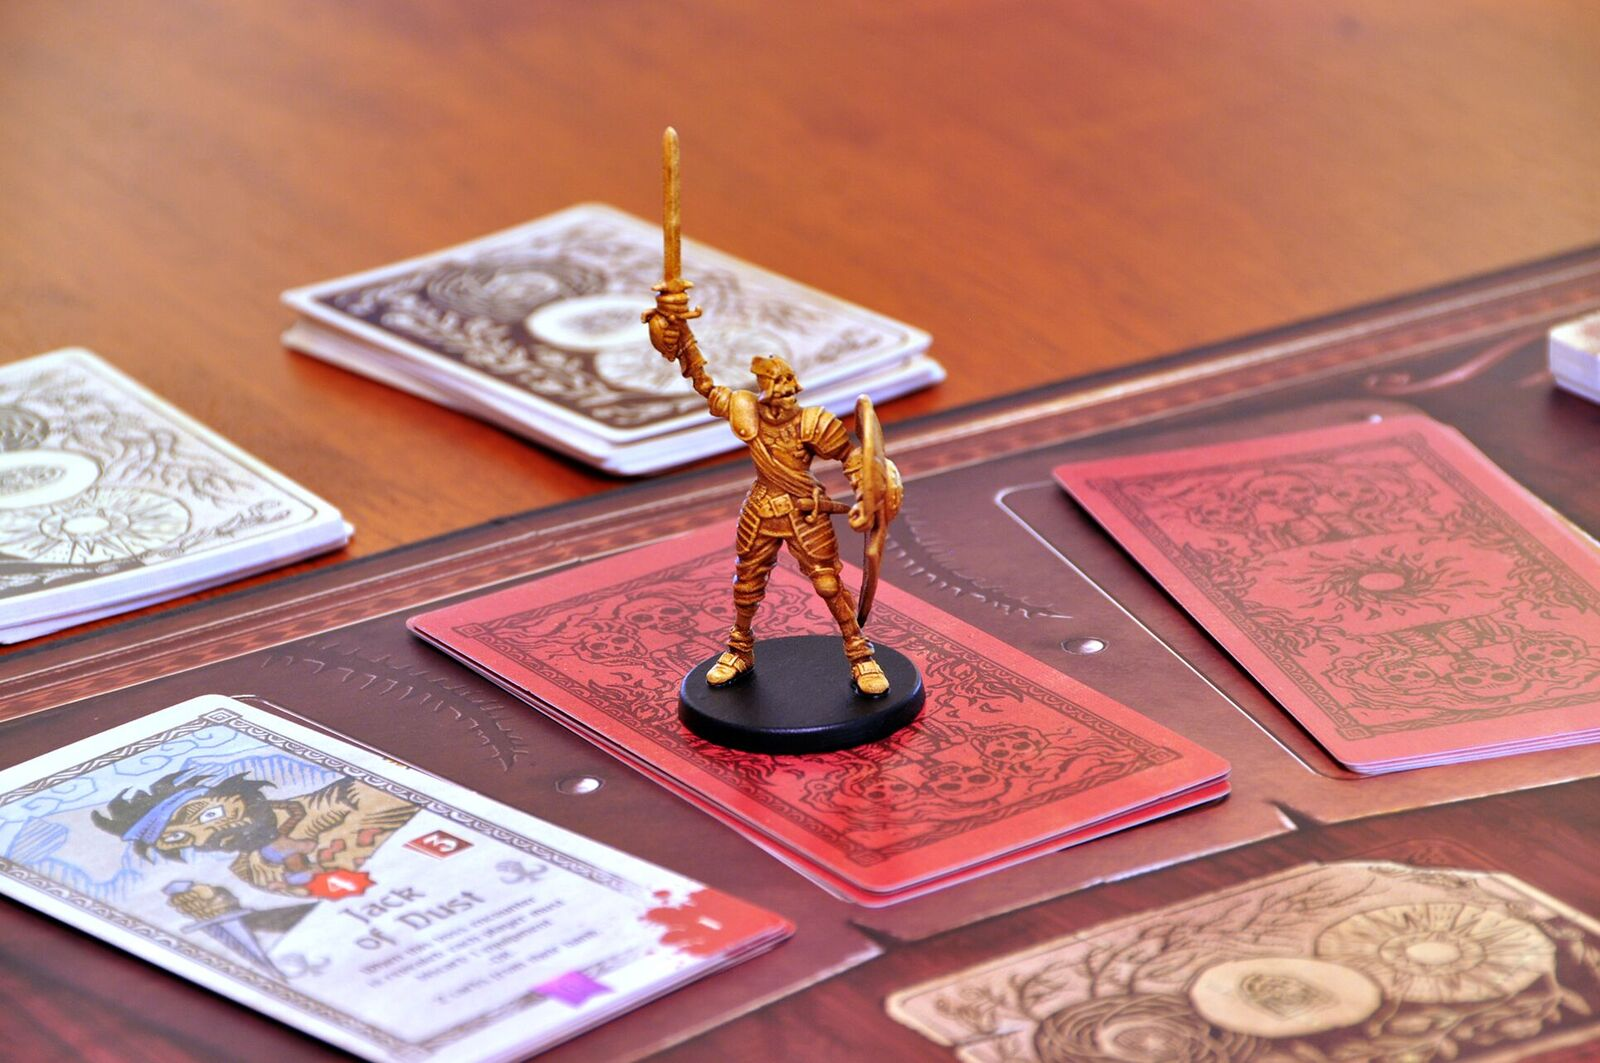 Hand of Fate Ordeals is bringing deck-building to adventure